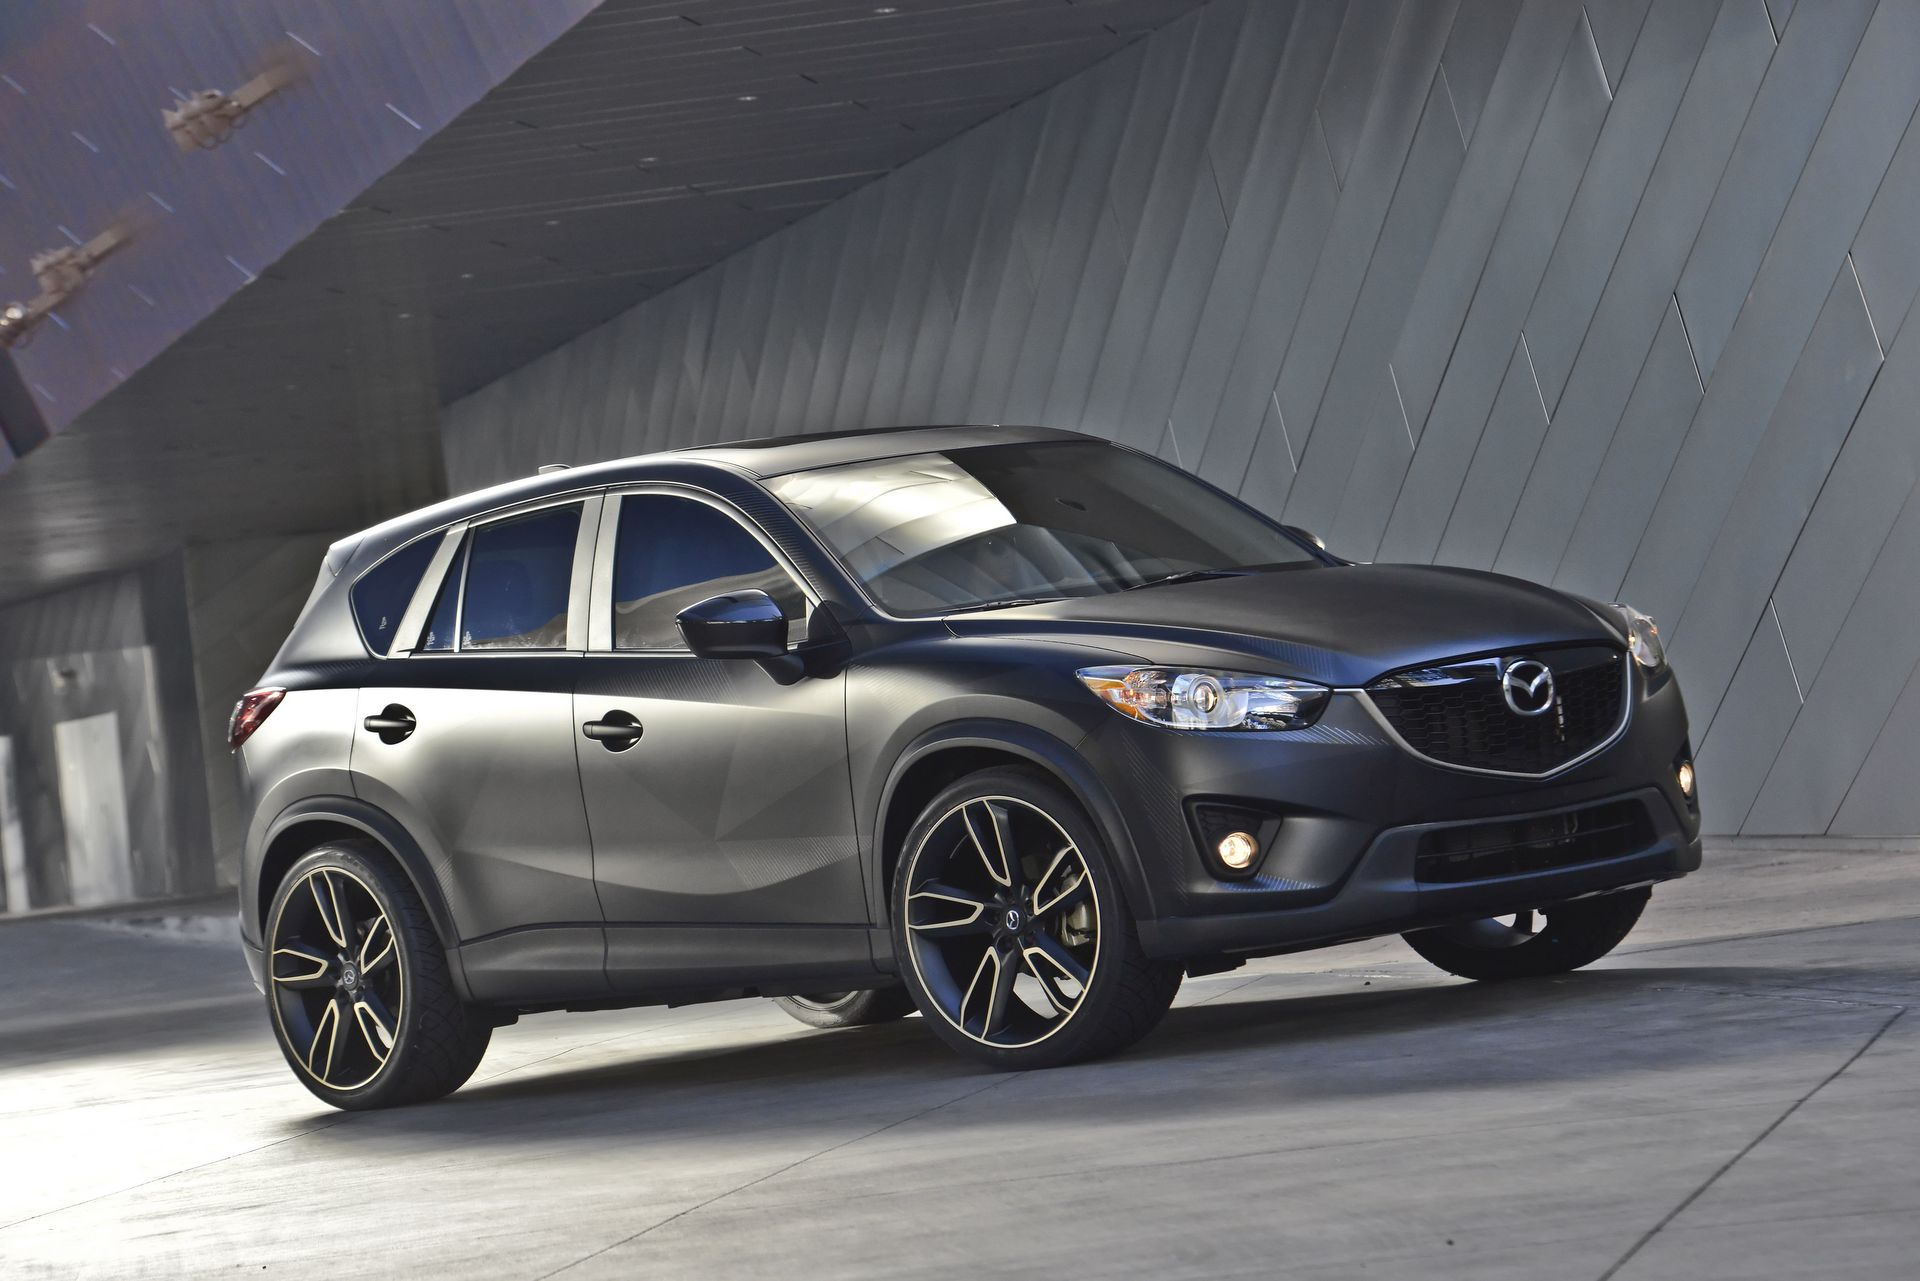 54 best mazda cx 5 images on pinterest mazda cx5 mazda and the o jays